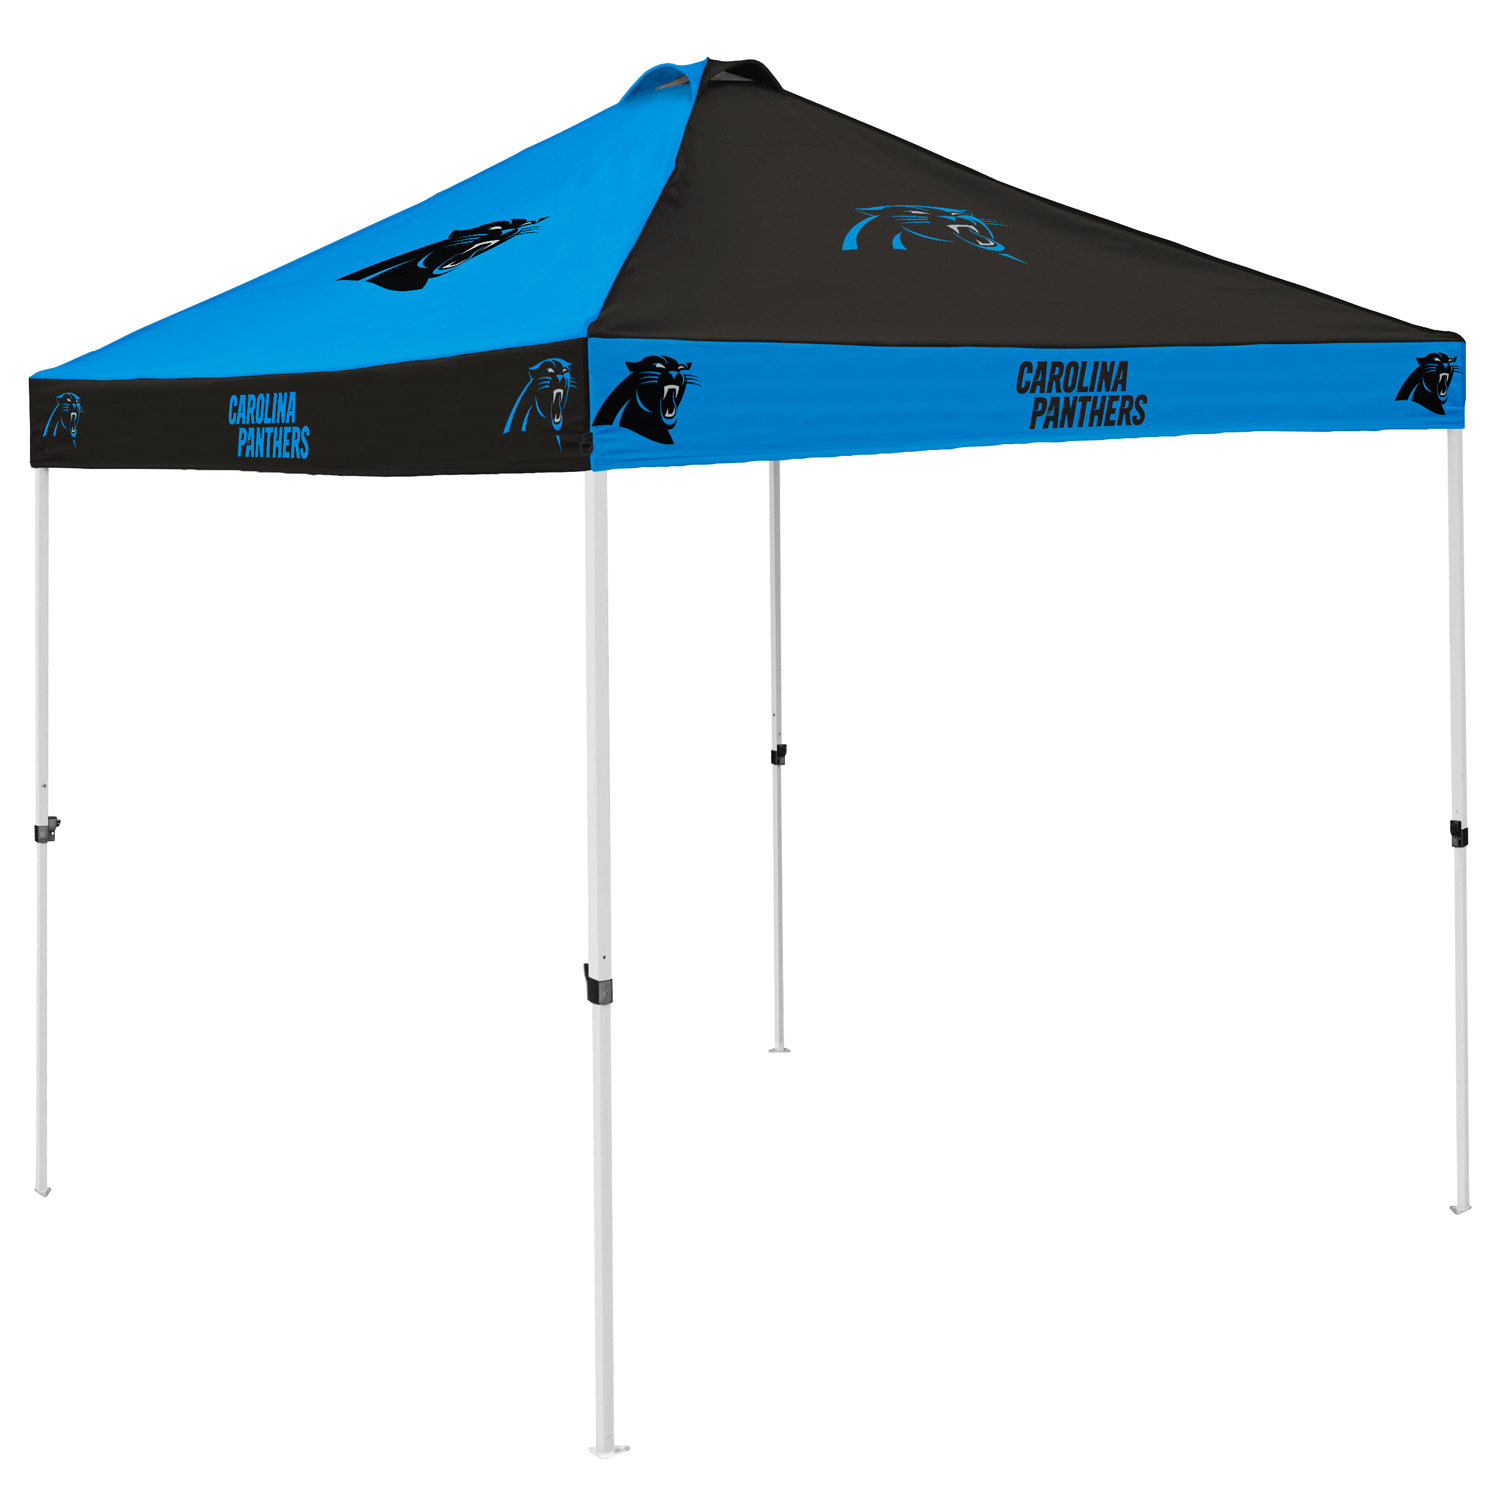 Carolina Tent w/ Panthers Logo - 9 x 9 Checkerboard Canopy  sc 1 st  Team Sports Covers : carolina tent - memphite.com